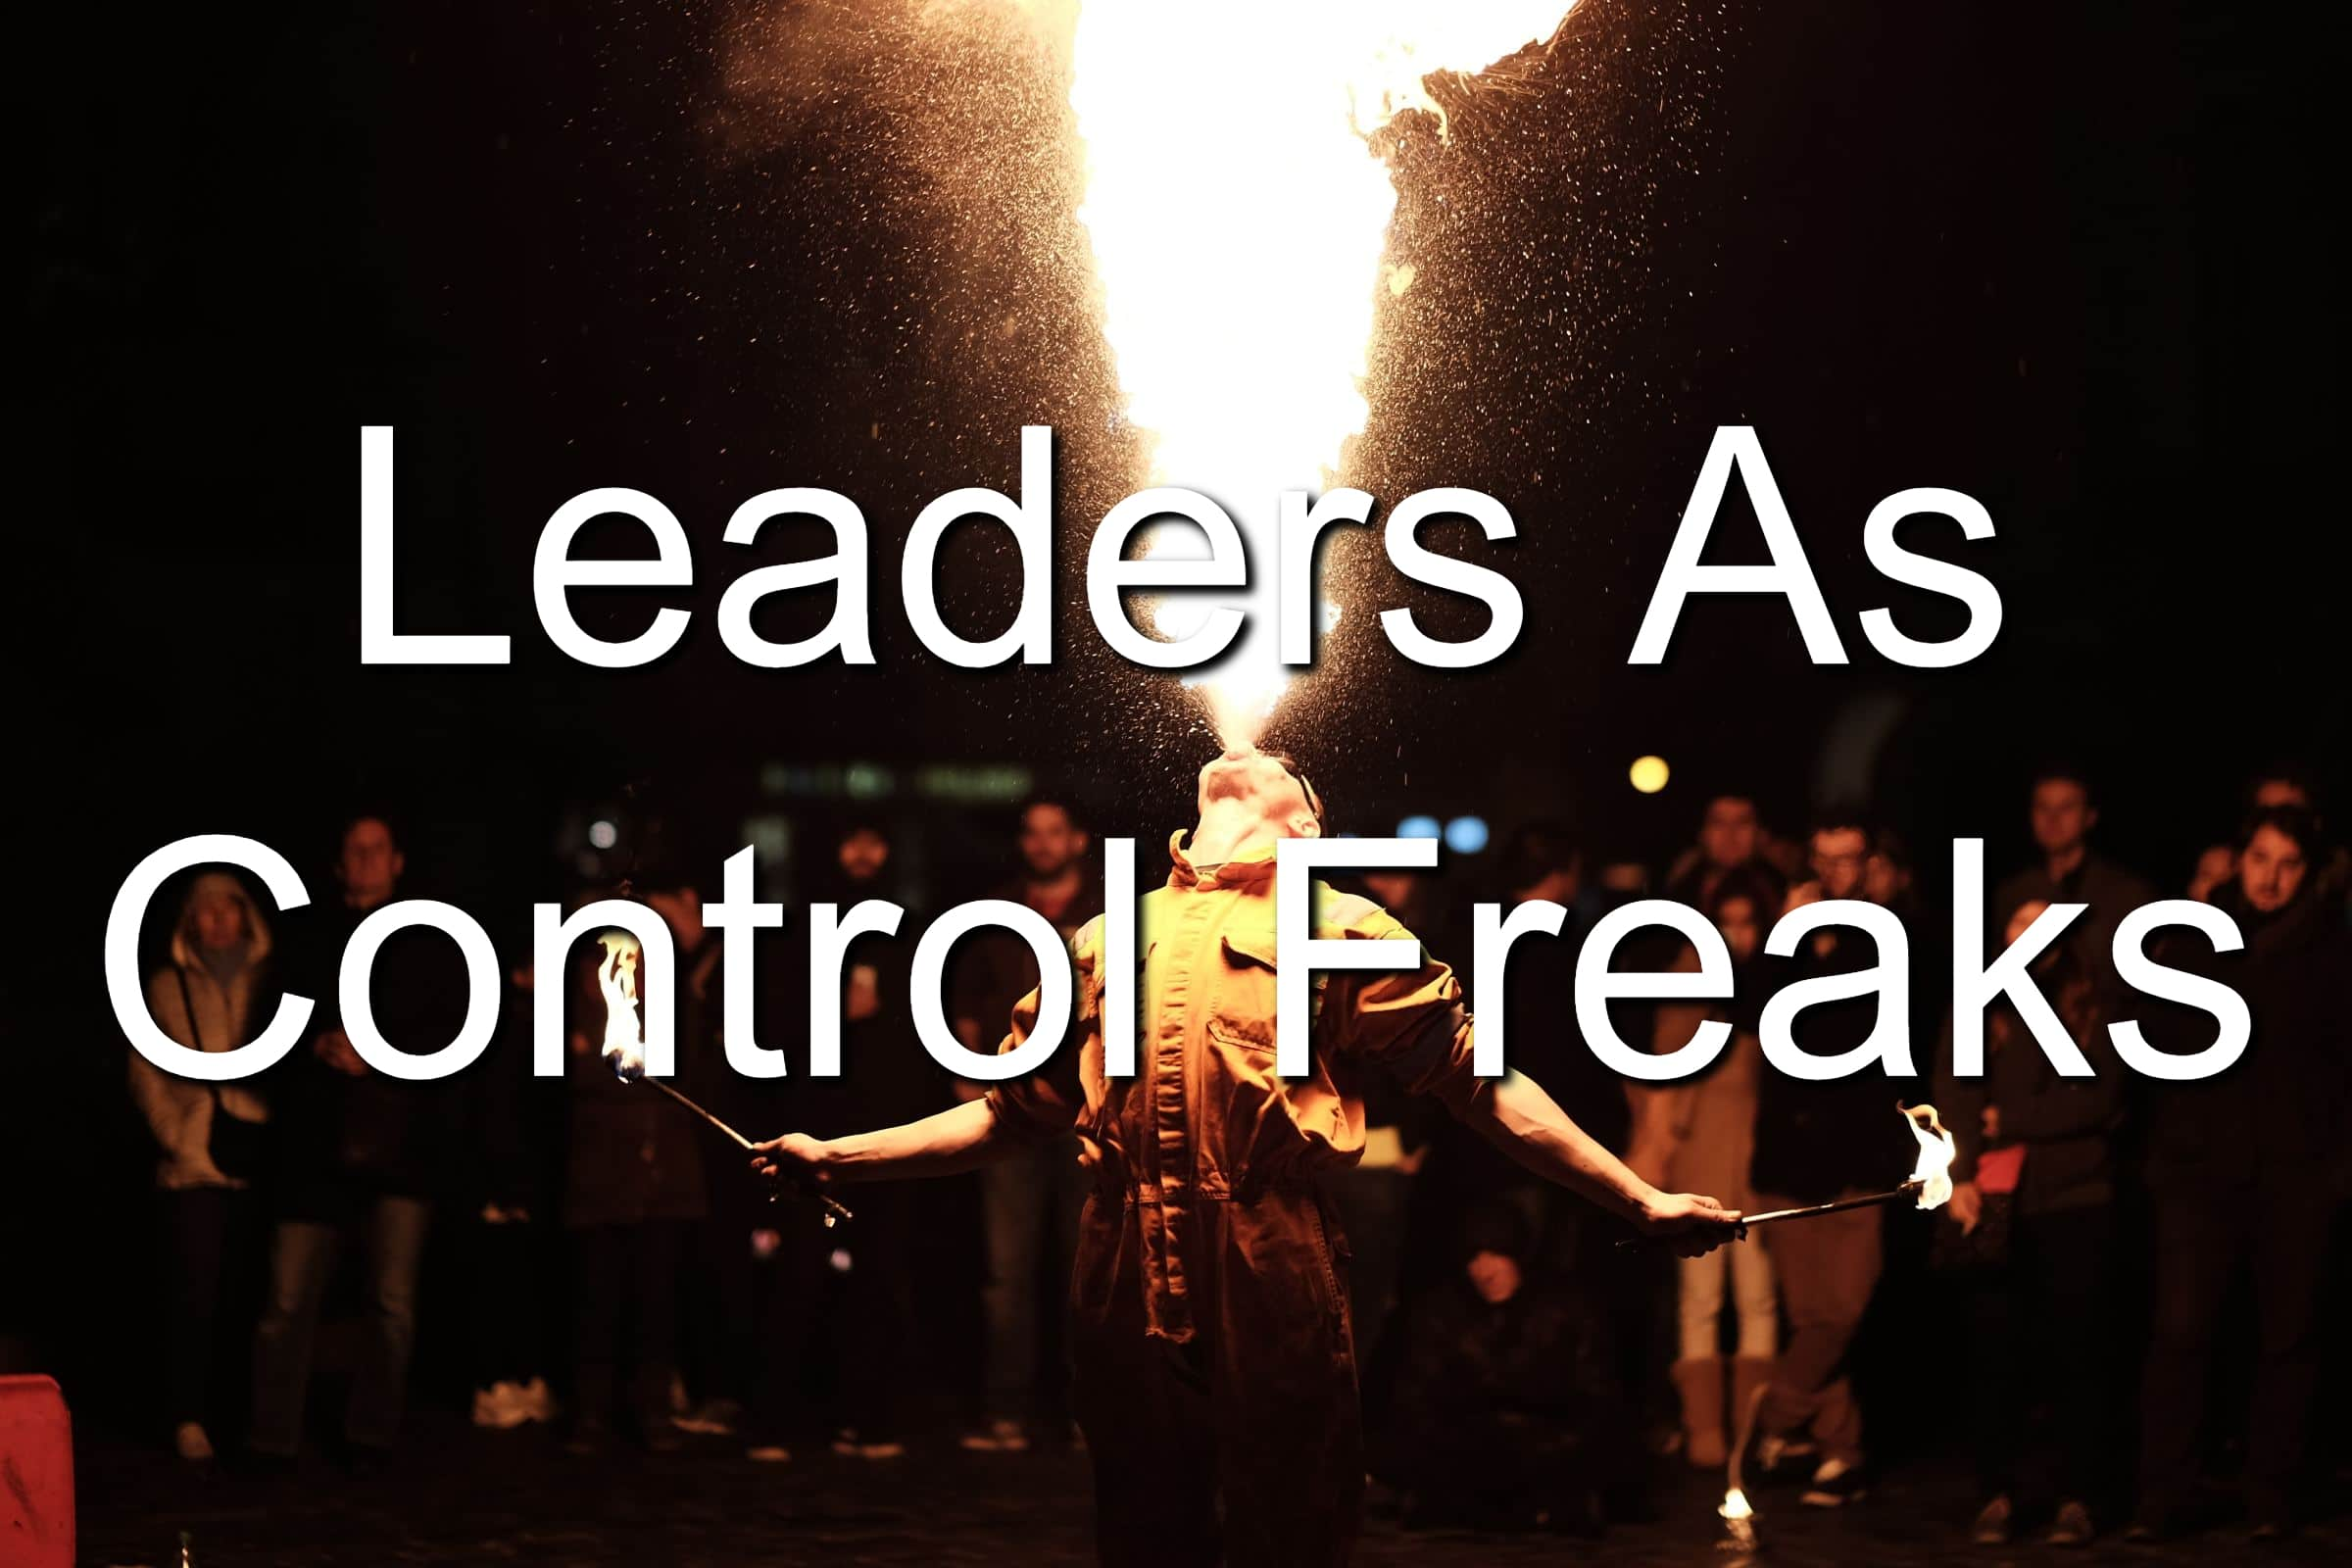 Leaders can be control freaks